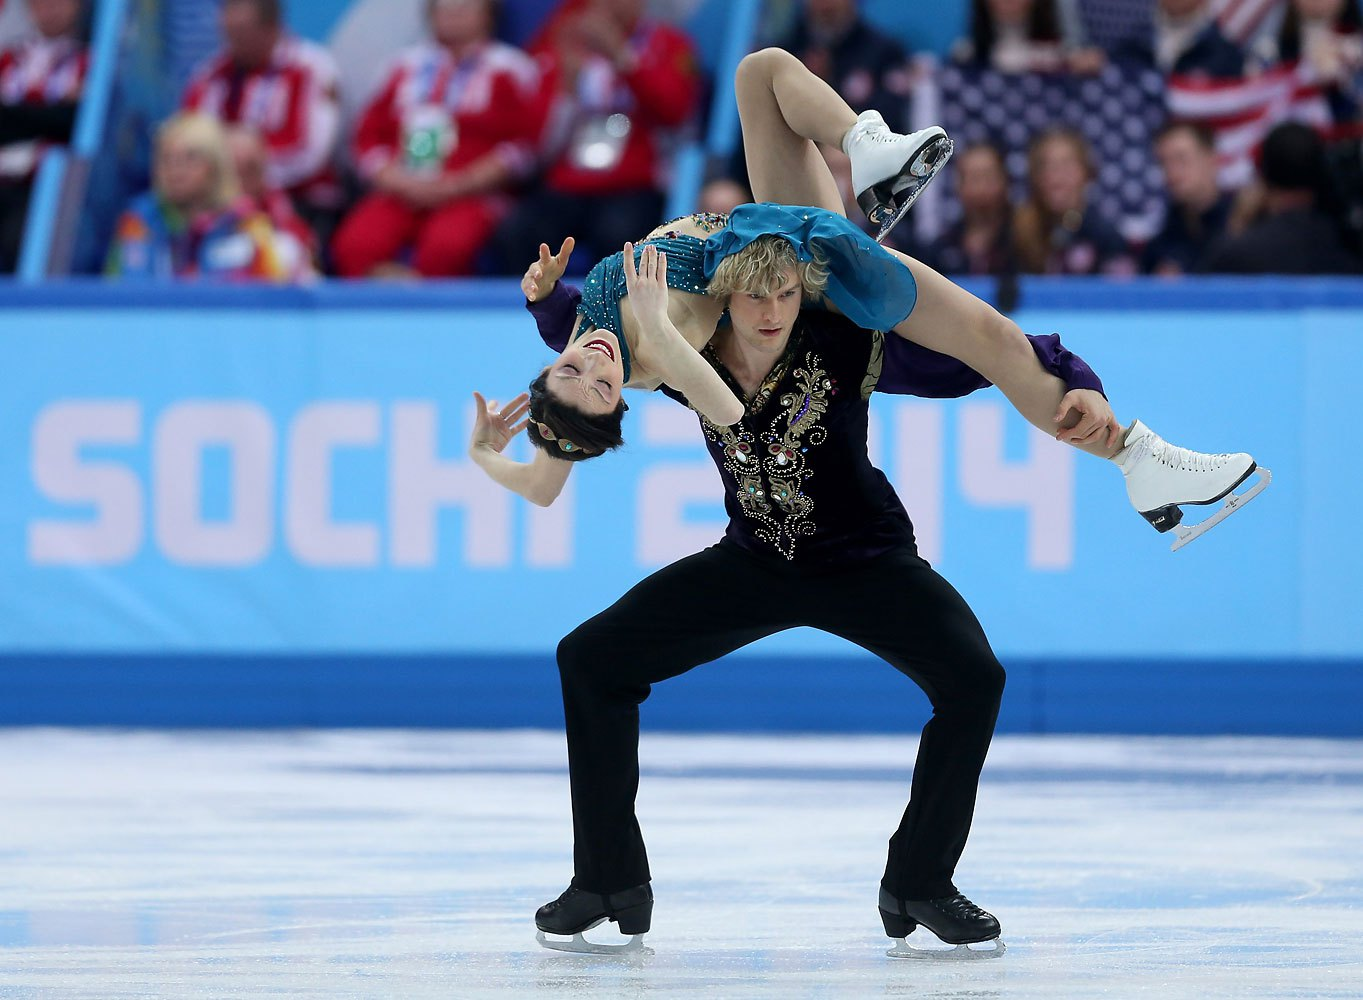 For their free skate in Sochi in the team event, ice dancers Meryl Davis and Charlie White competed as Scherazade, in teal, and the sultan.